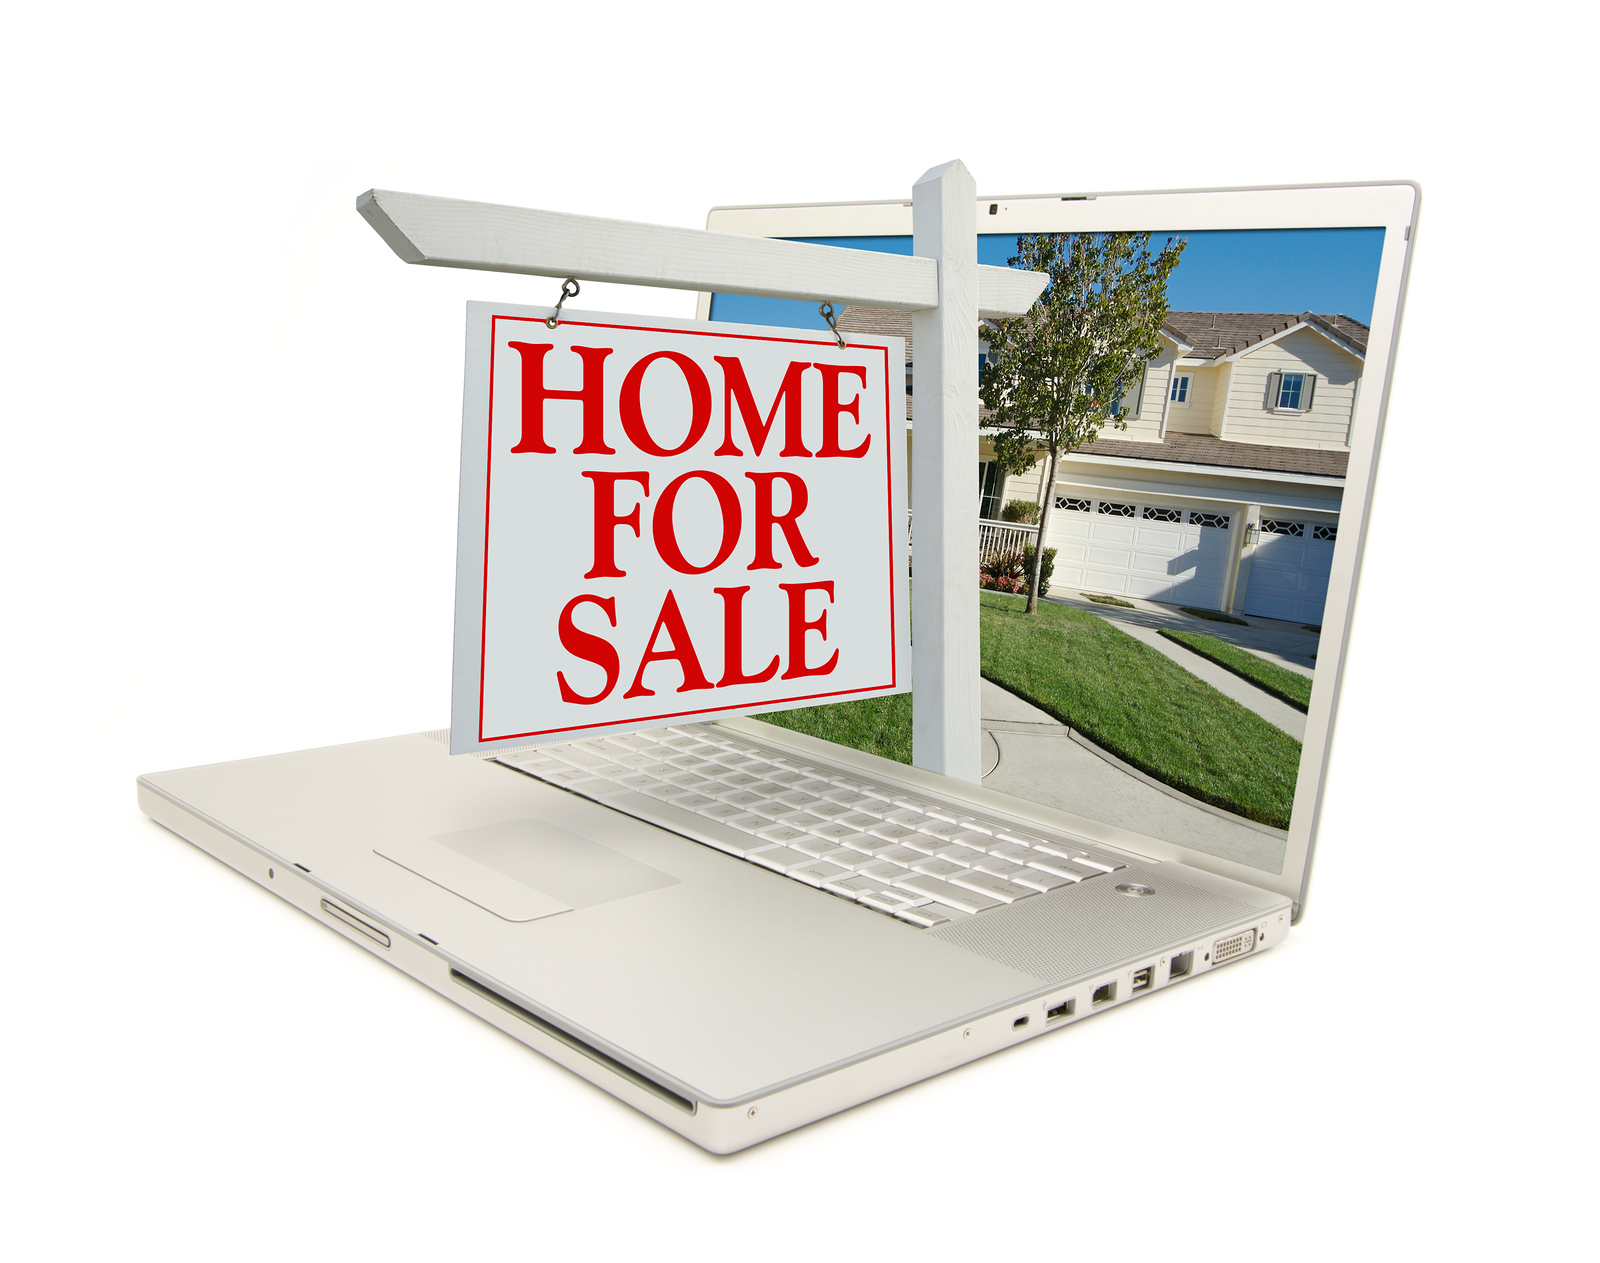 house for sale on computer